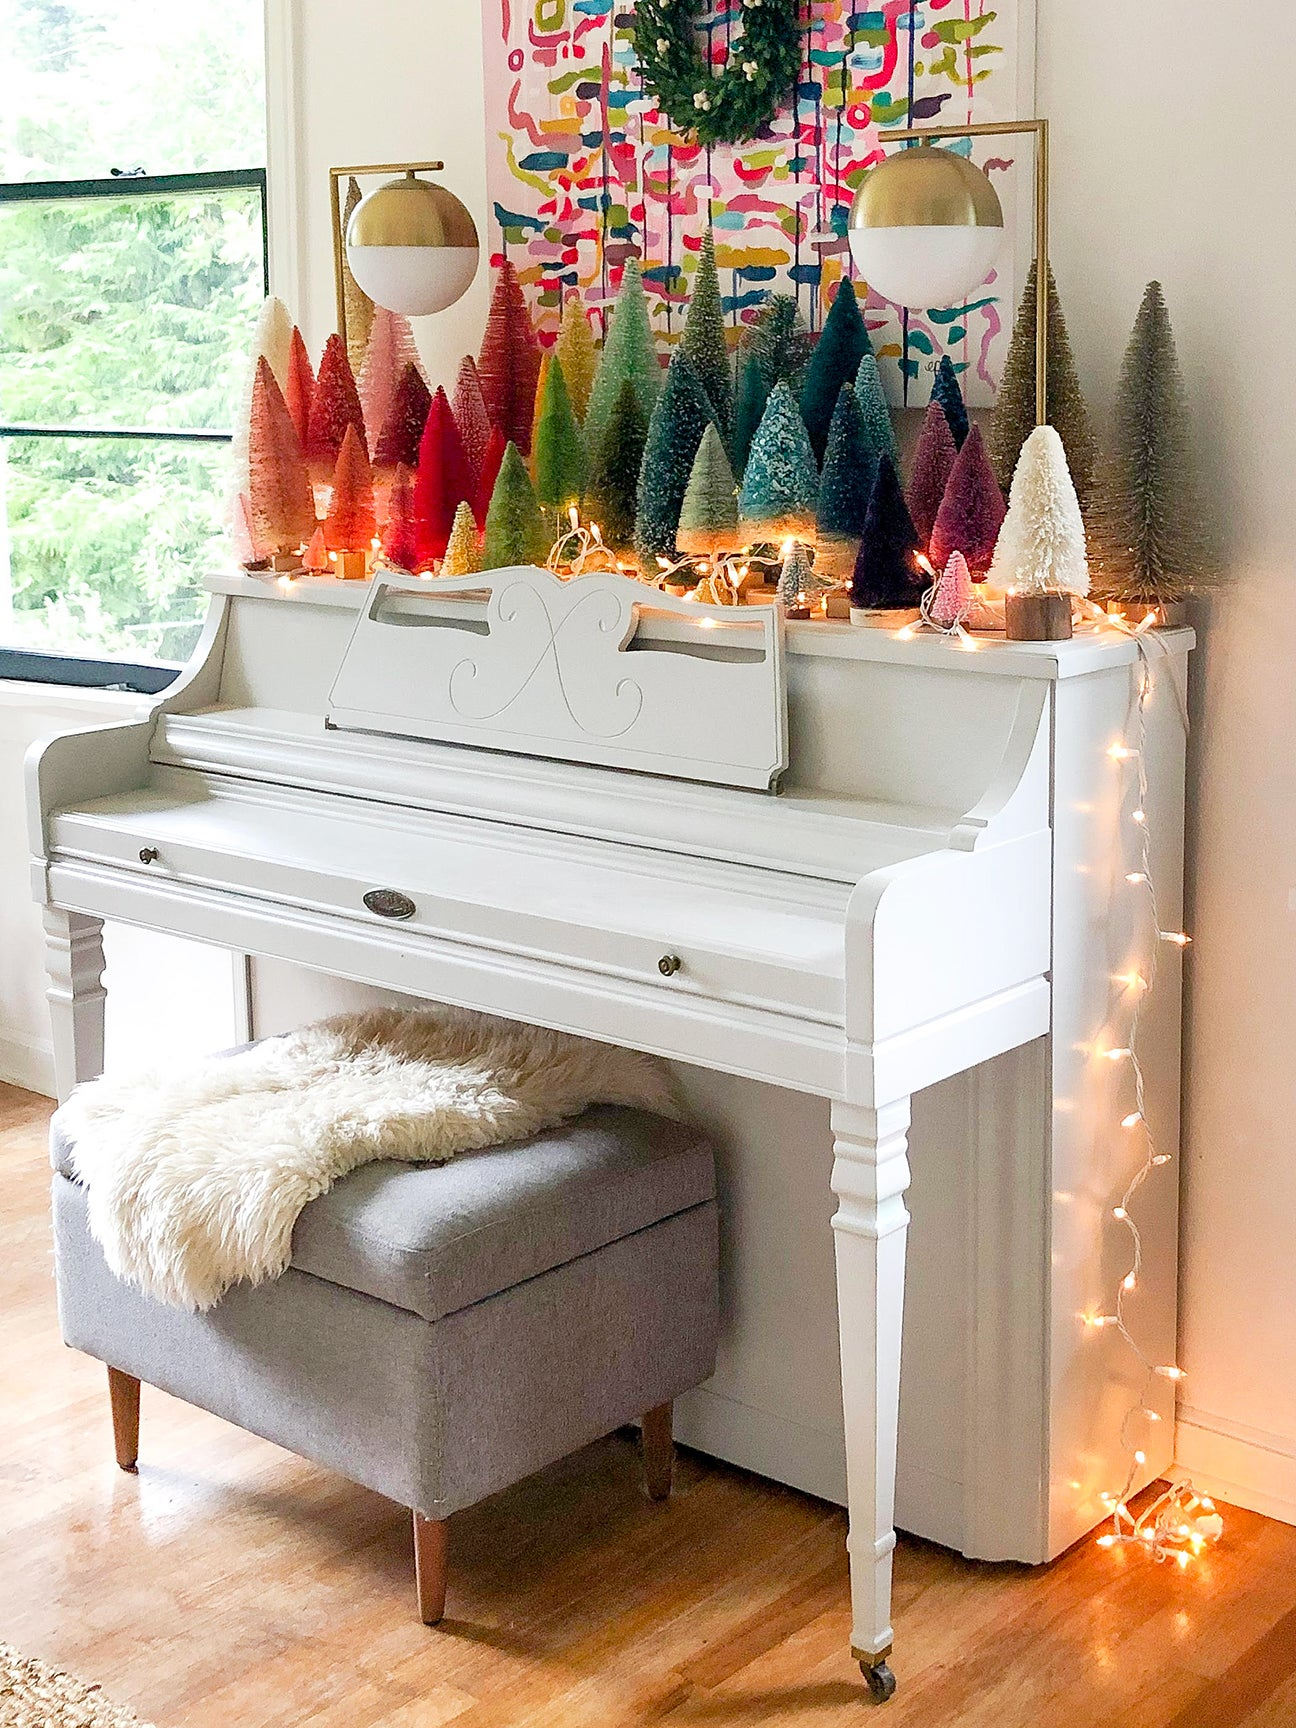 instagram-holiday-decorating-ideas-domino